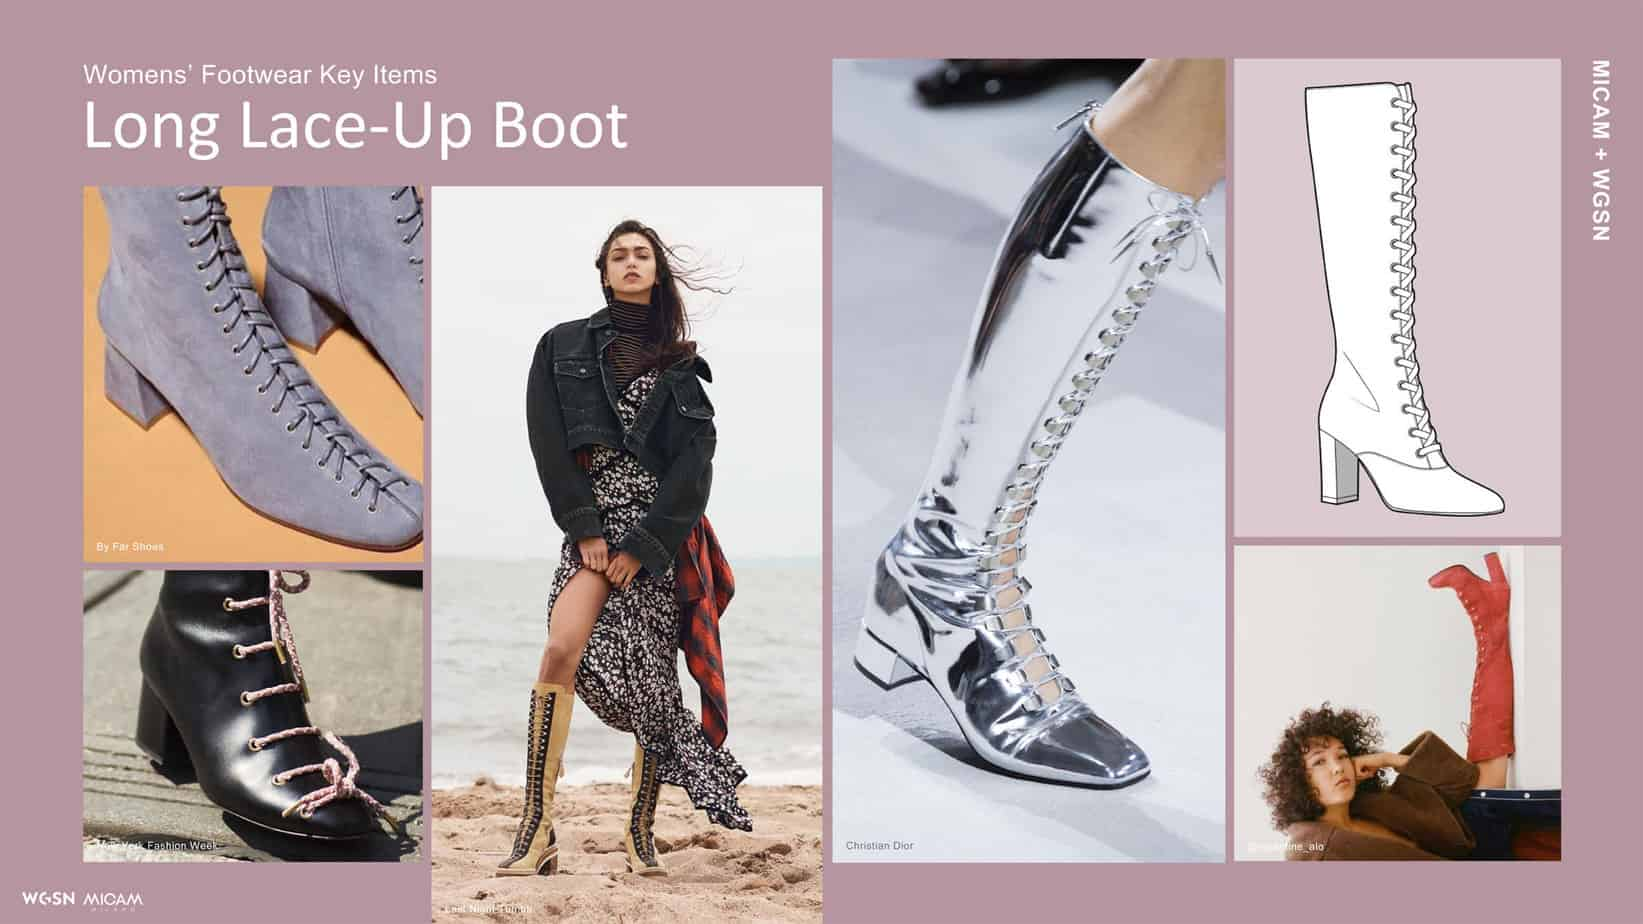 Womens' Footwear Key Items Long Lace-Up Boot